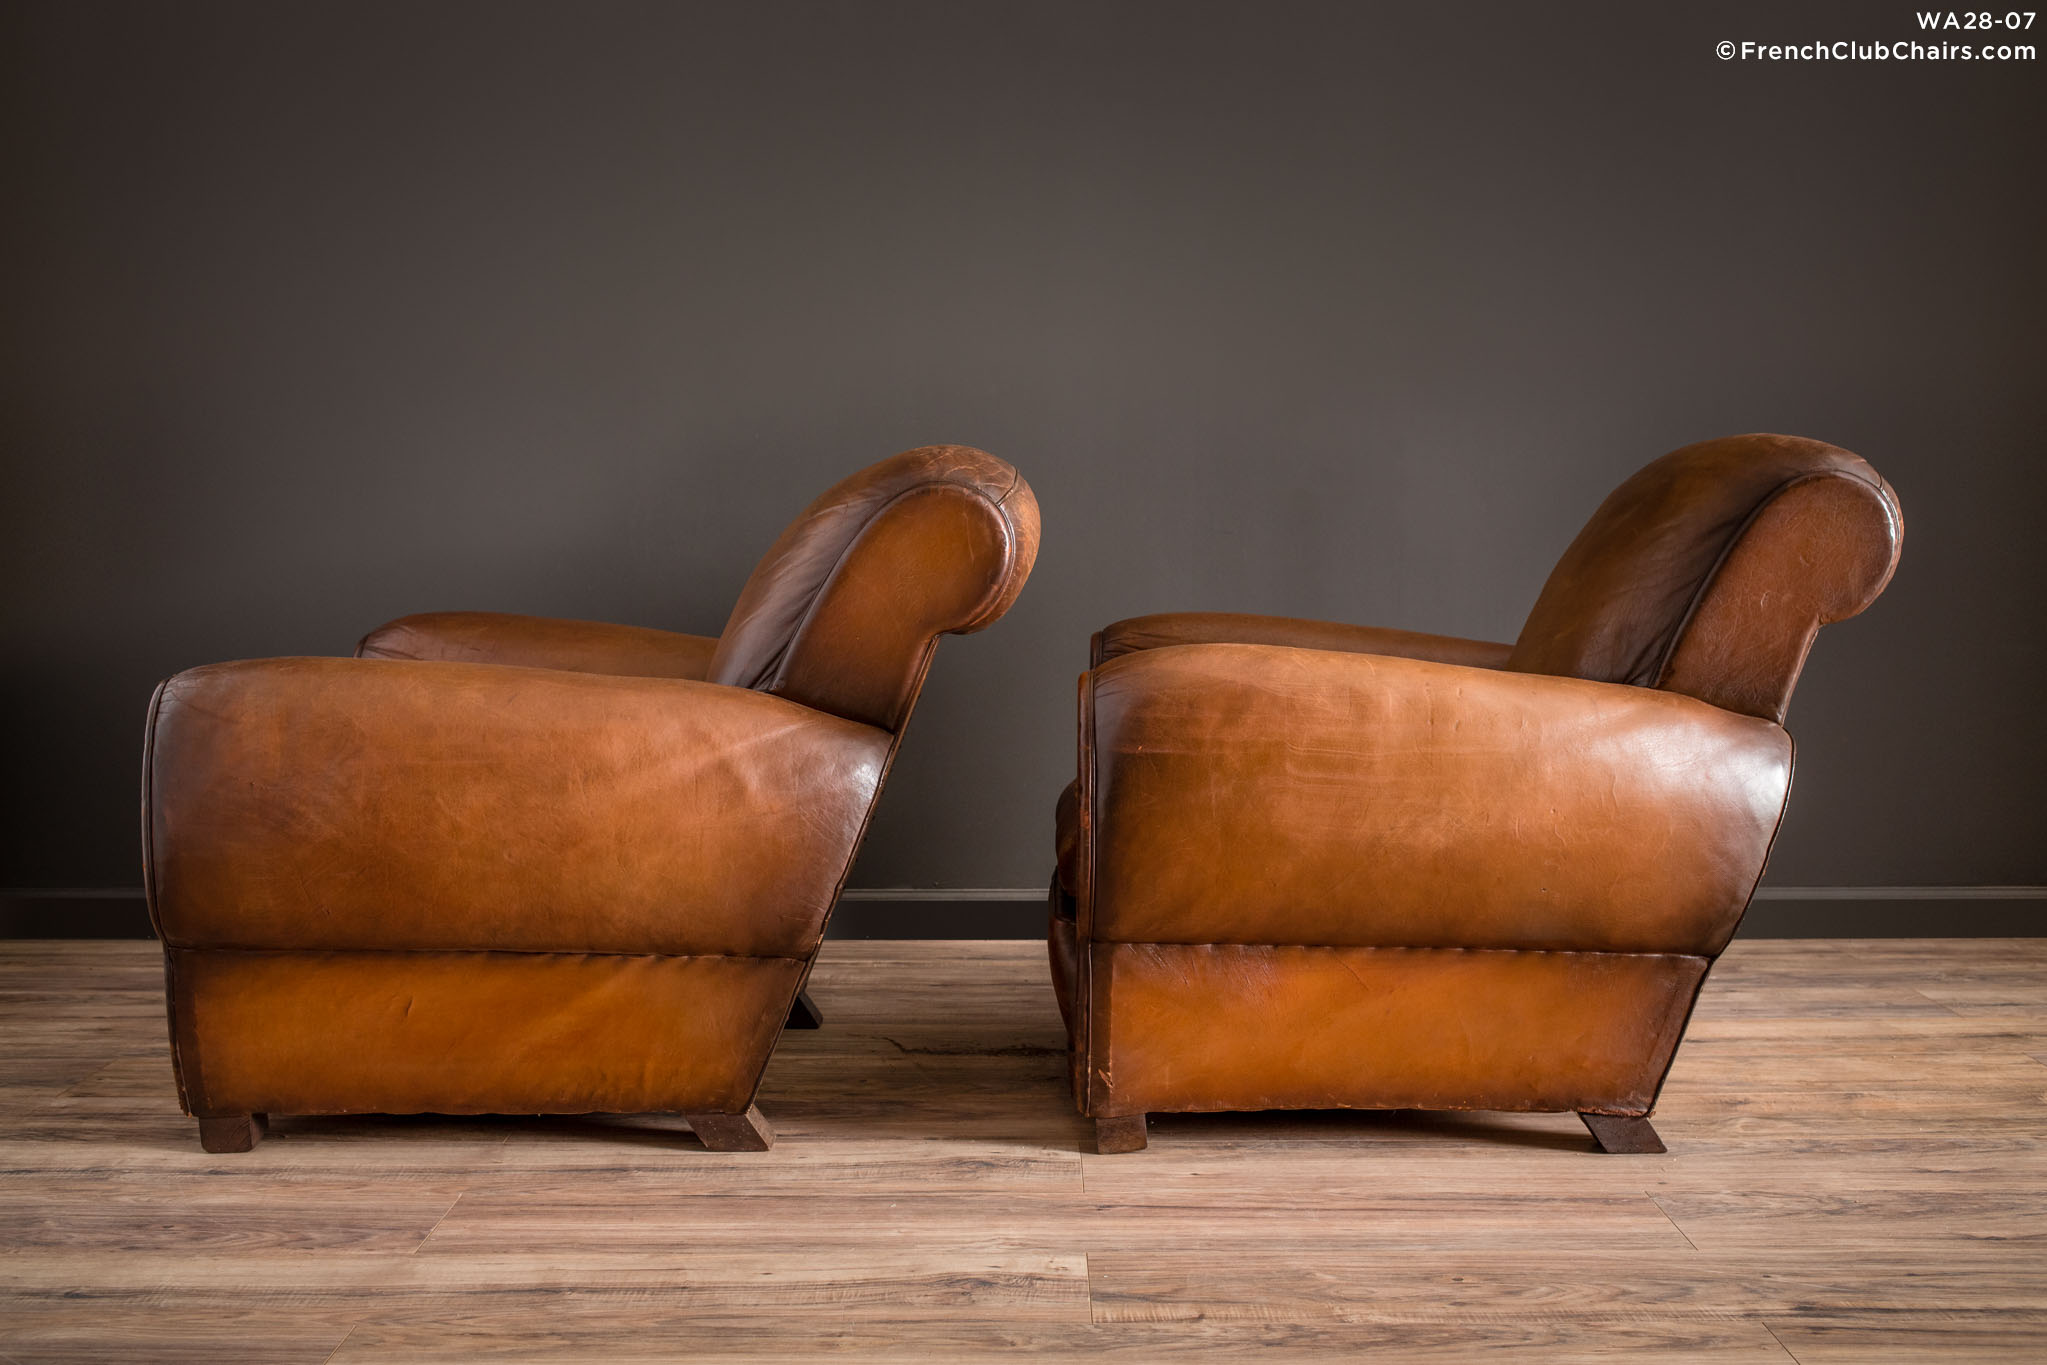 WA_28-07_La_Manche_Rollback_Pair_R_4LT1-williams-antiks-leather-french-club-chair-wa_fcccom